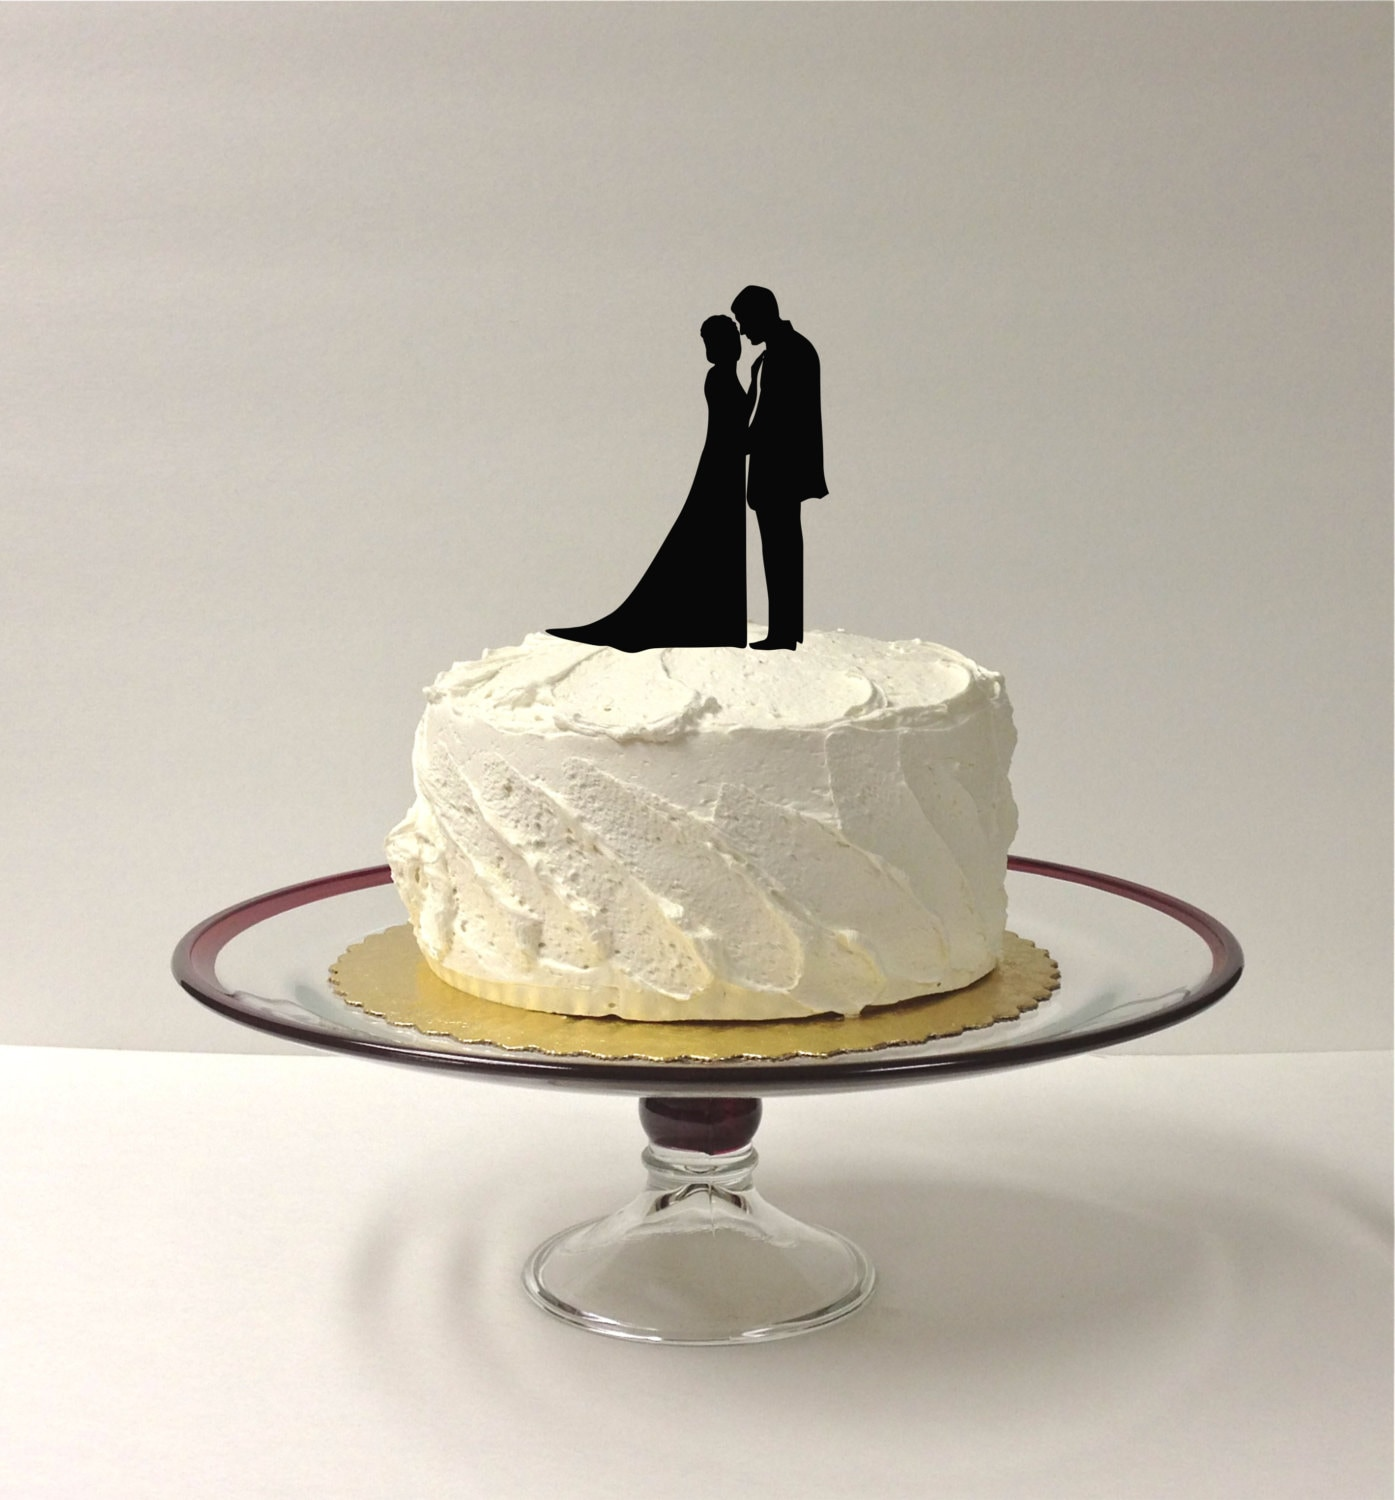 MADE In USA Beautiful Silhouette Wedding Cake Topper Bride